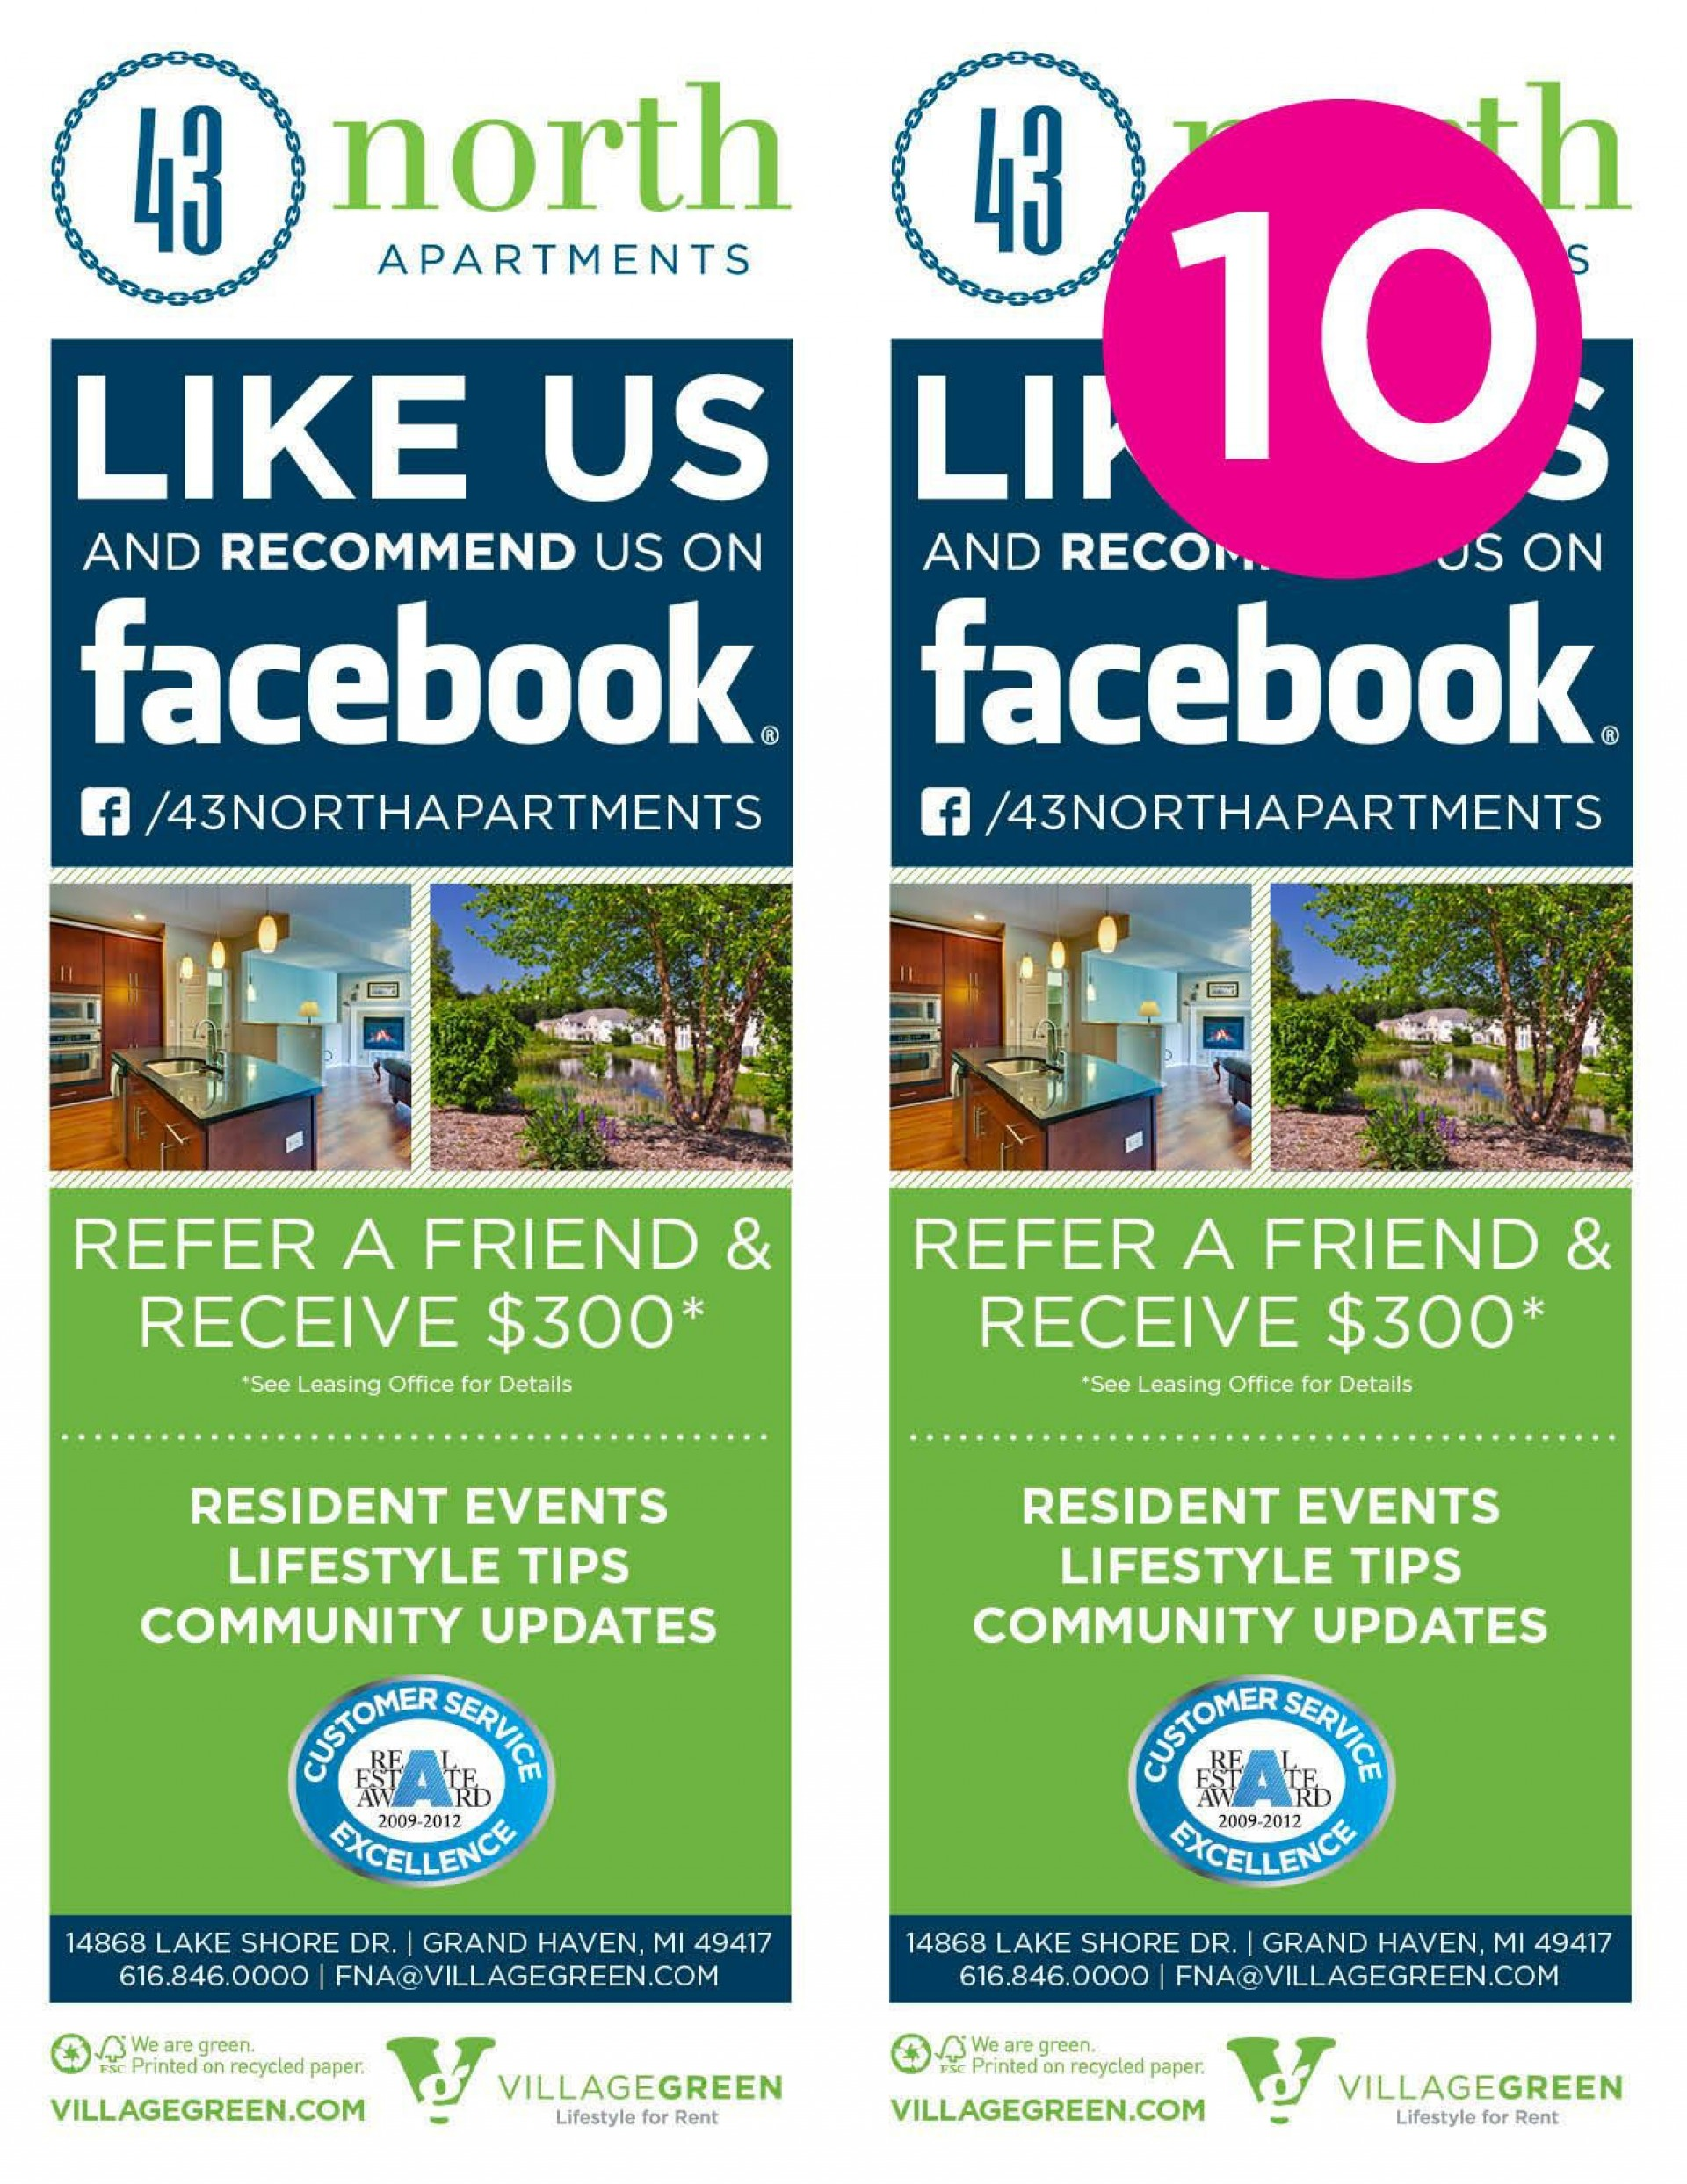 004 Amazing Like U On Facebook Template Highest Clarity  Free Flyer Email Find Poster1920